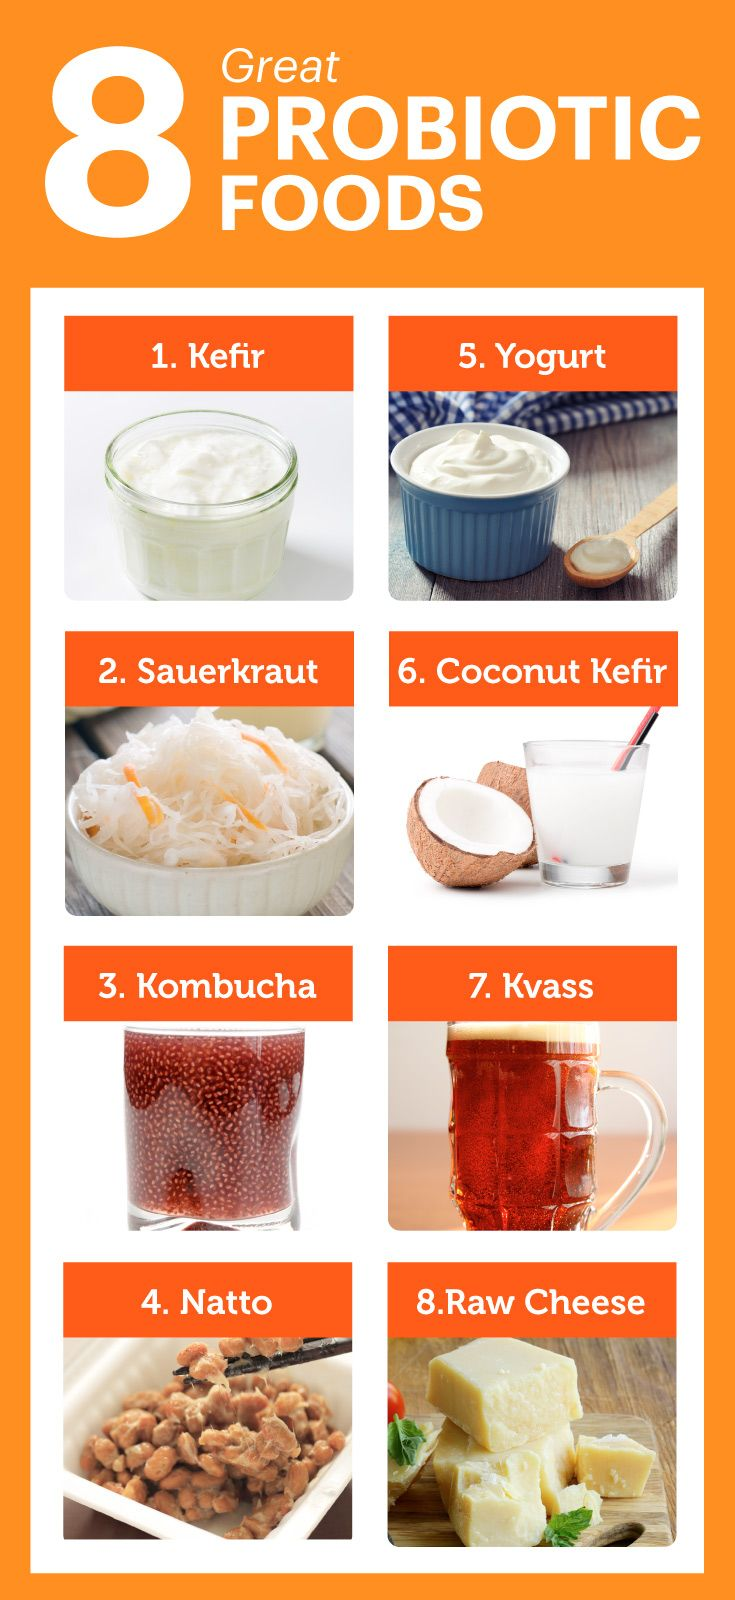 Probiotic Fermented Foods List